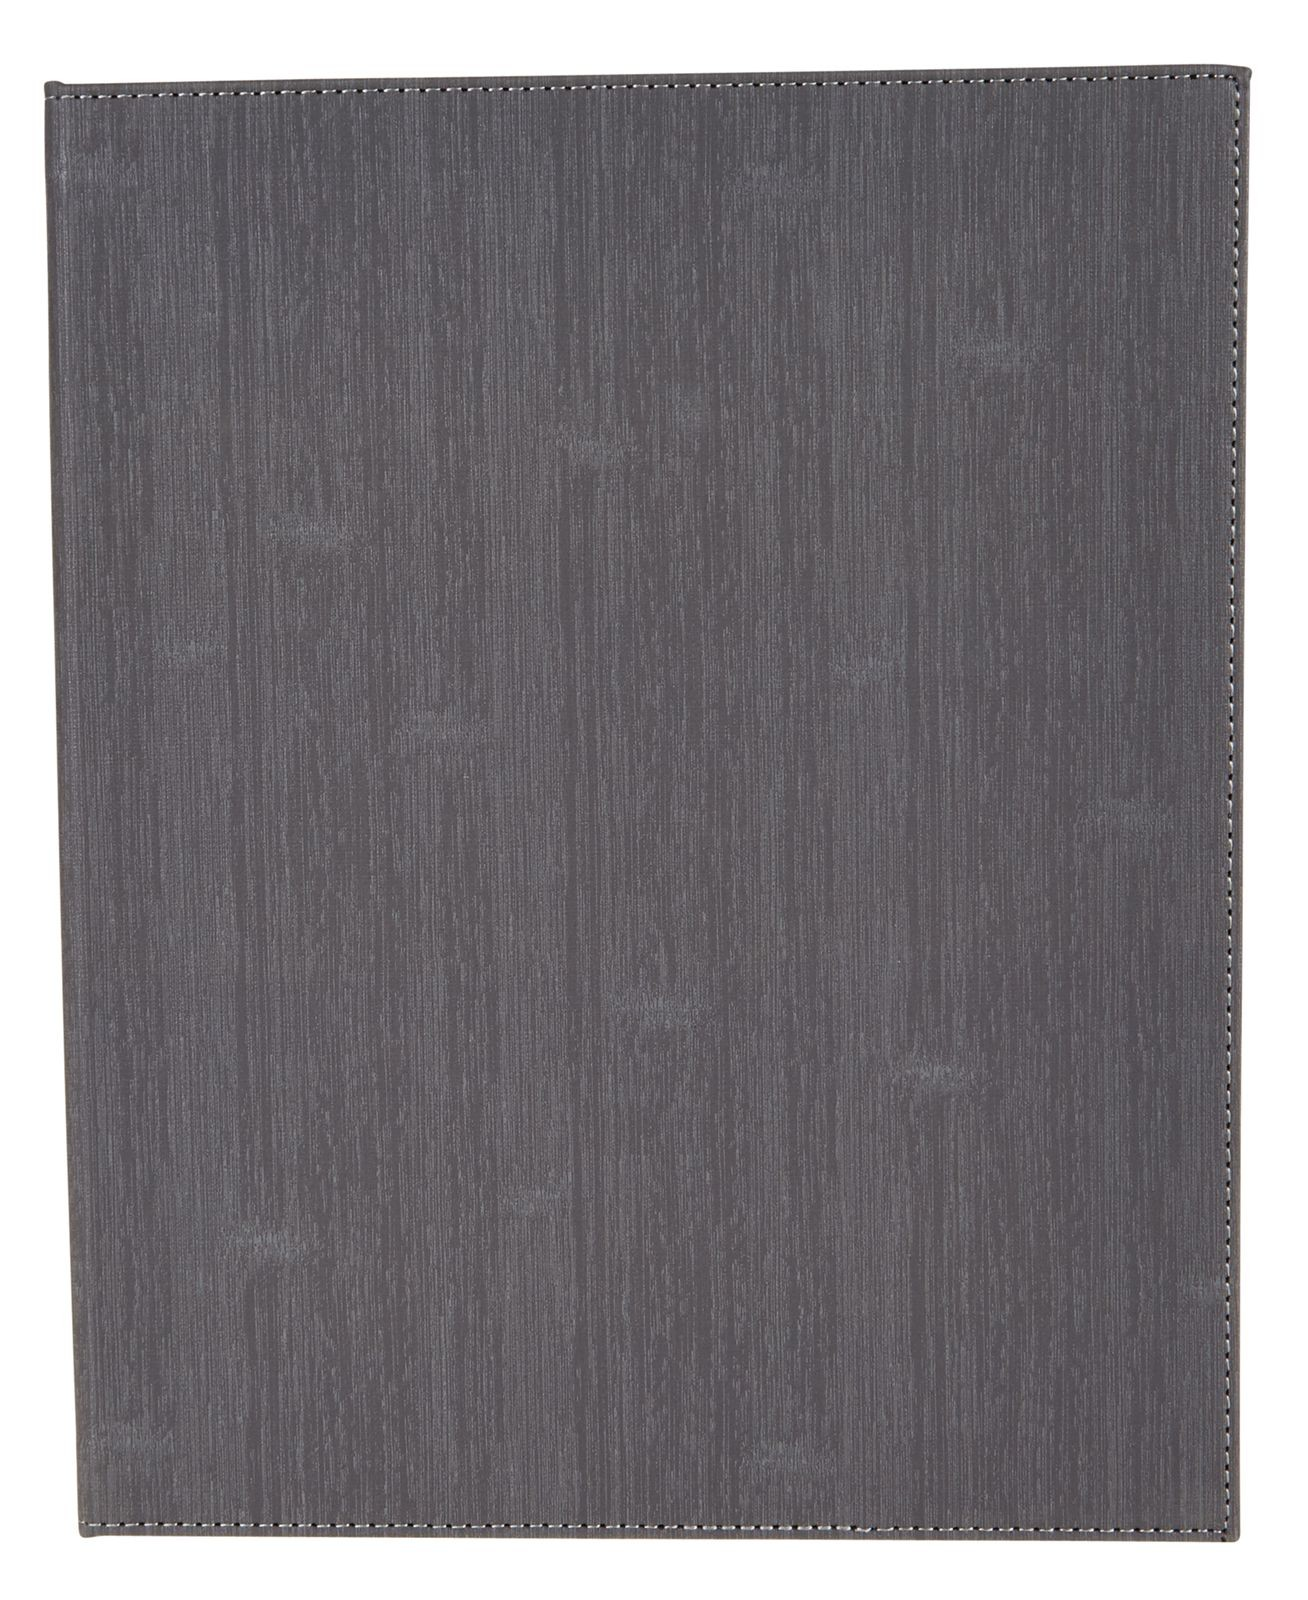 "Winco LMD-811GY Gray Leatherette Two Panel Menu Cover 8-1/2"" x 11"""